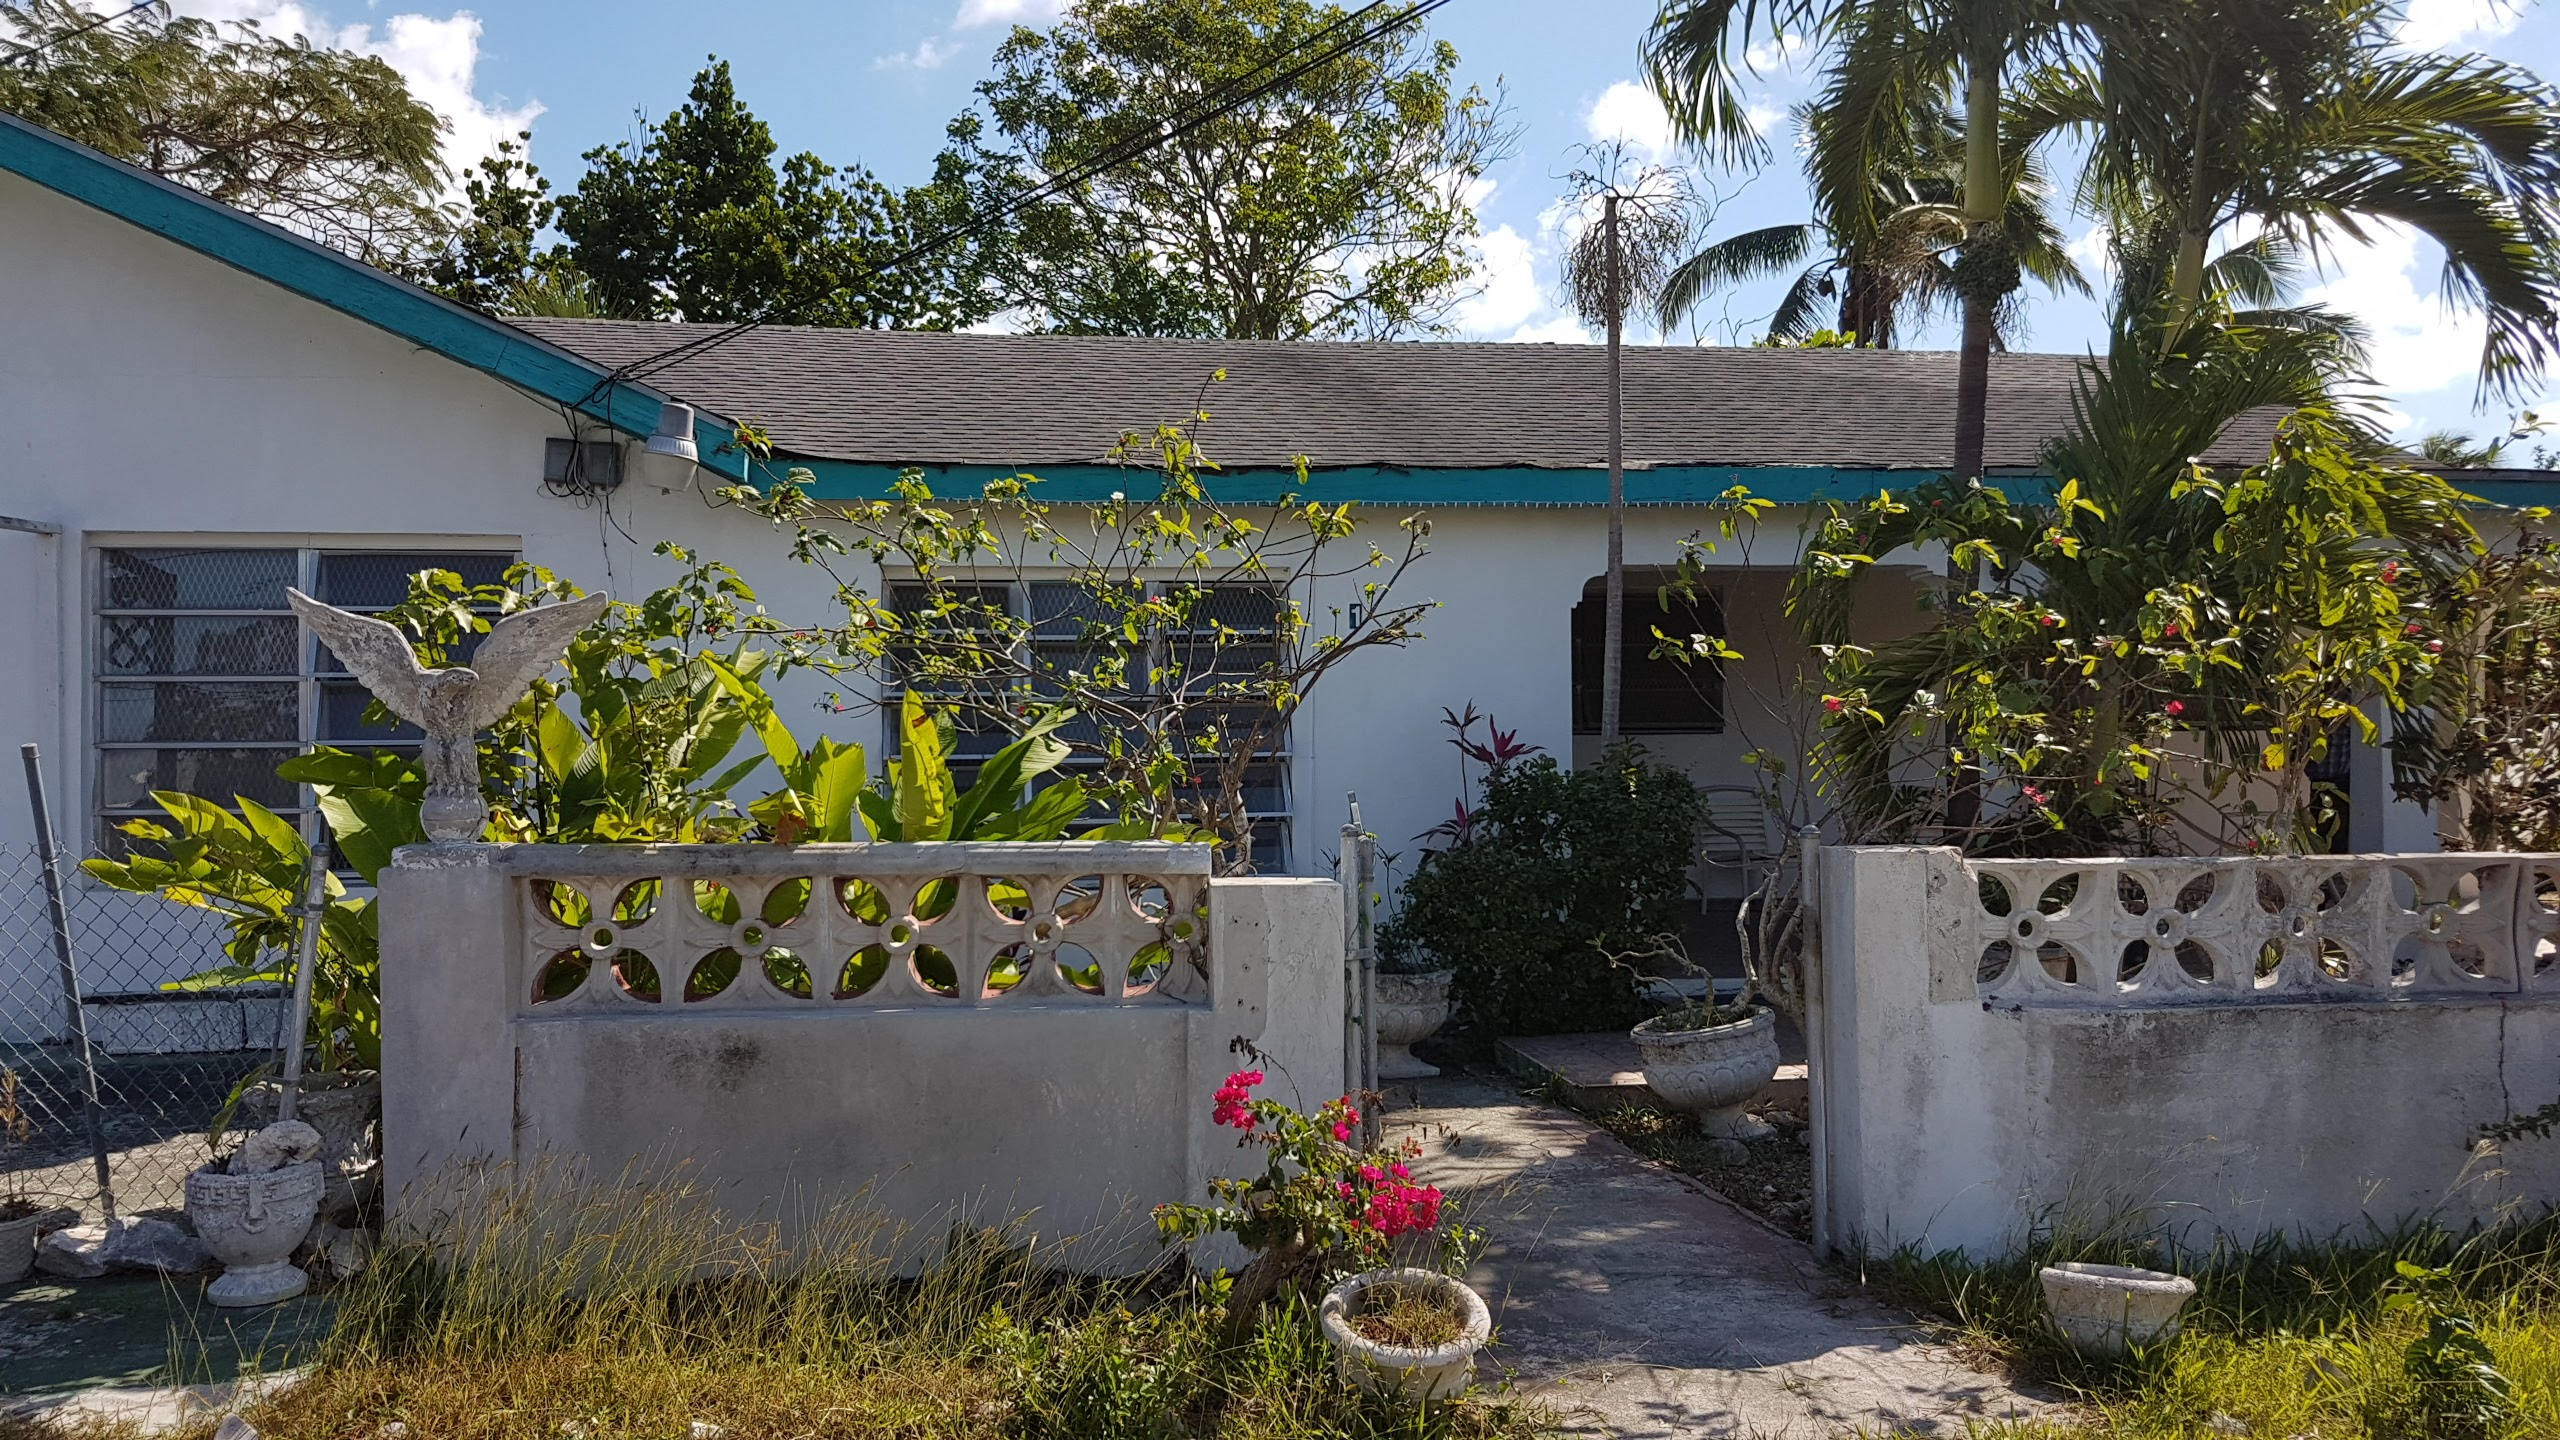 Single Family Home for Sale at Prince Charles Property with Commercial Potential - MLS 29290 Prince Charles Drive, Nassau And Paradise Island, Bahamas